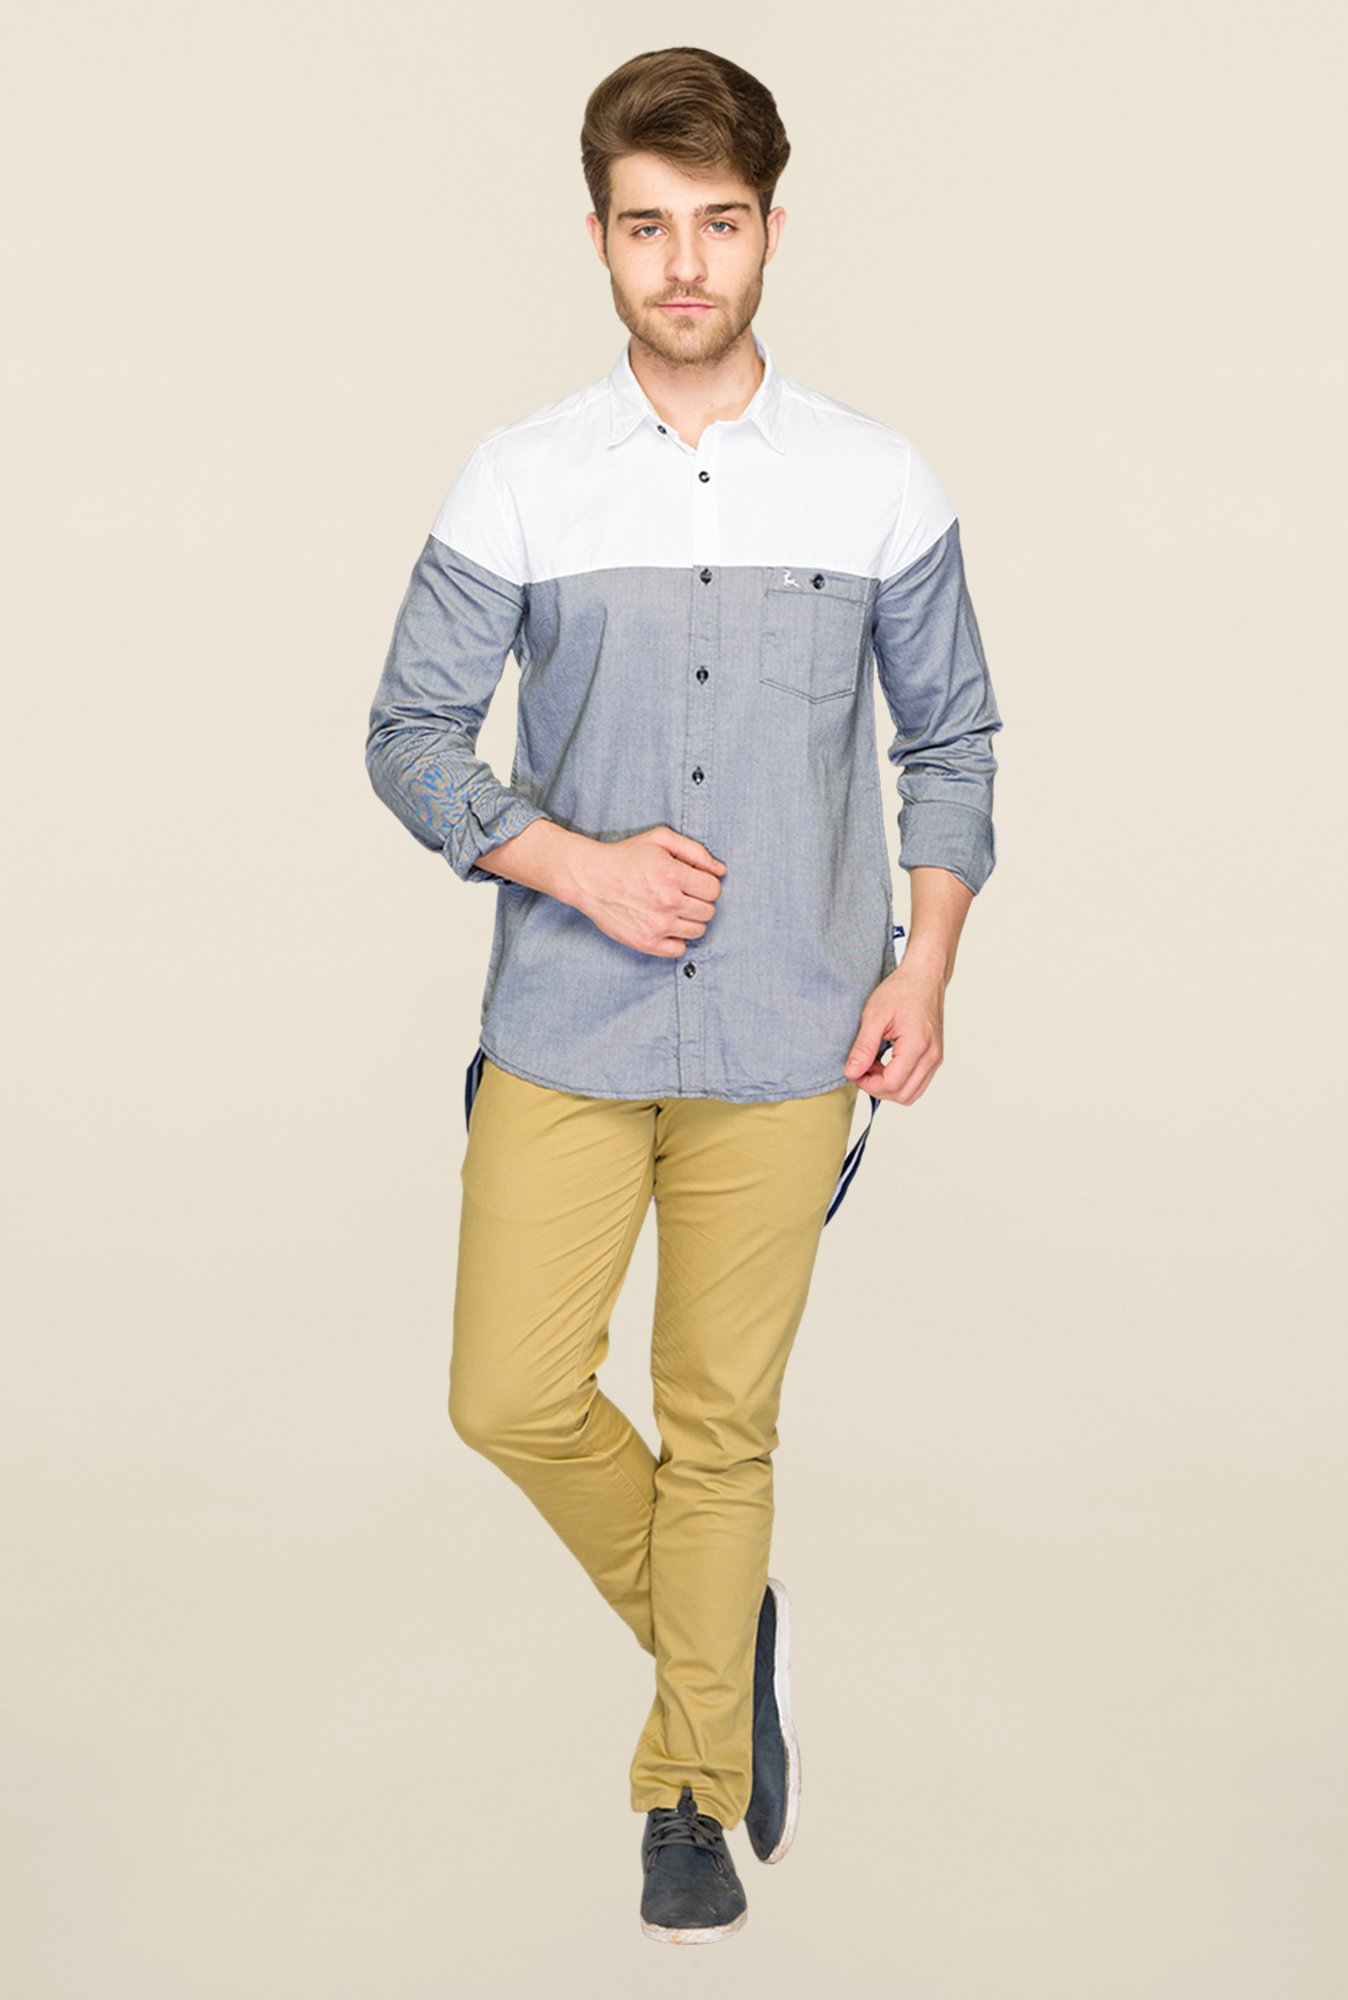 Parx Grey & White Solid Shirt